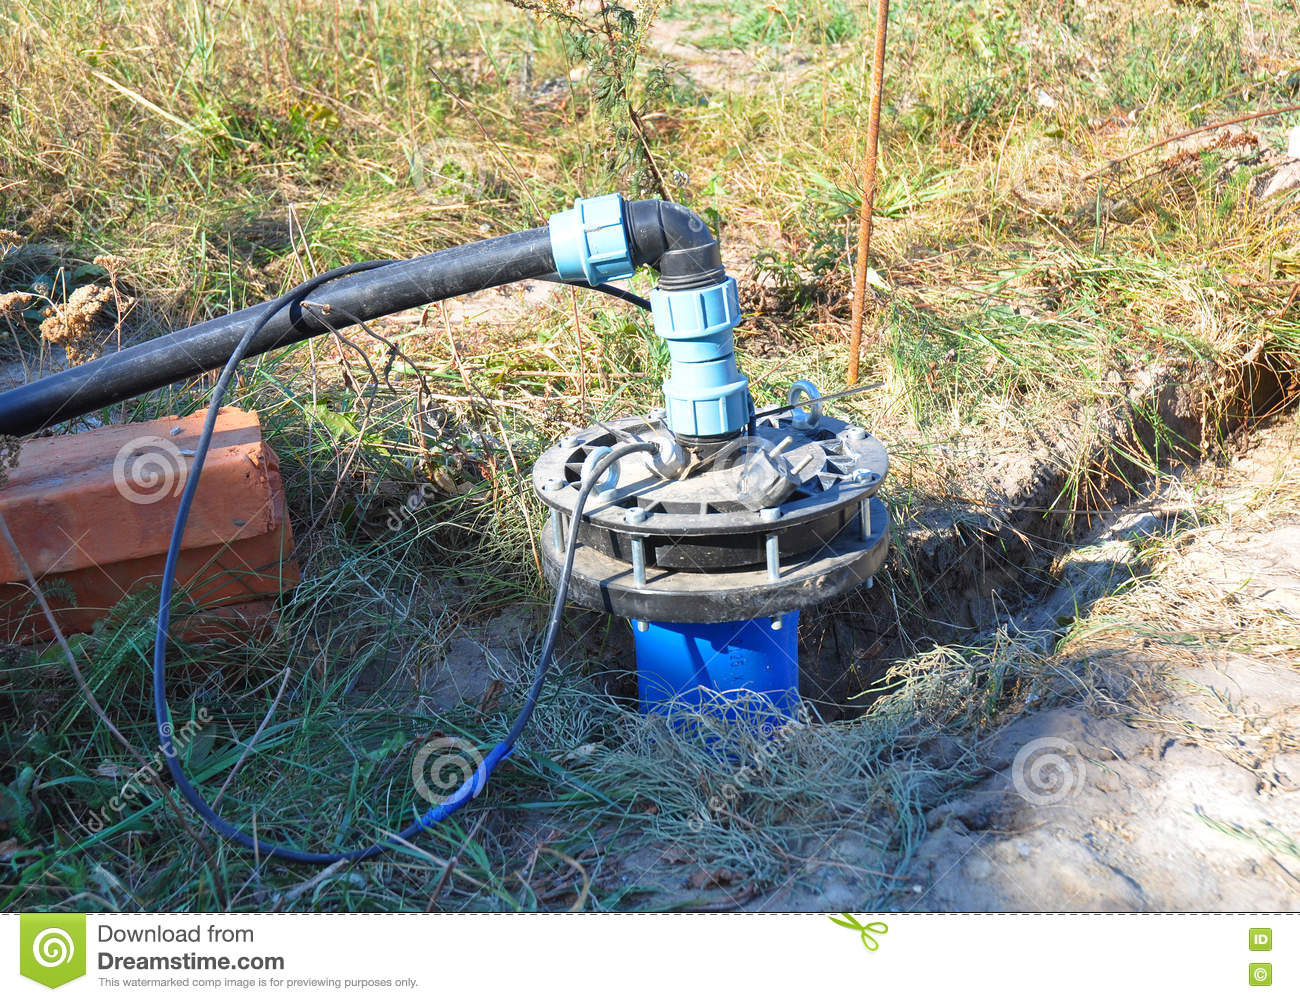 Download New Installed Water Borehole. New HouseWater Borehole Drilling For Water Supply. Bore Water Installation, Bore Pumps Stock Image - Image of borehole, pumps: 74561847